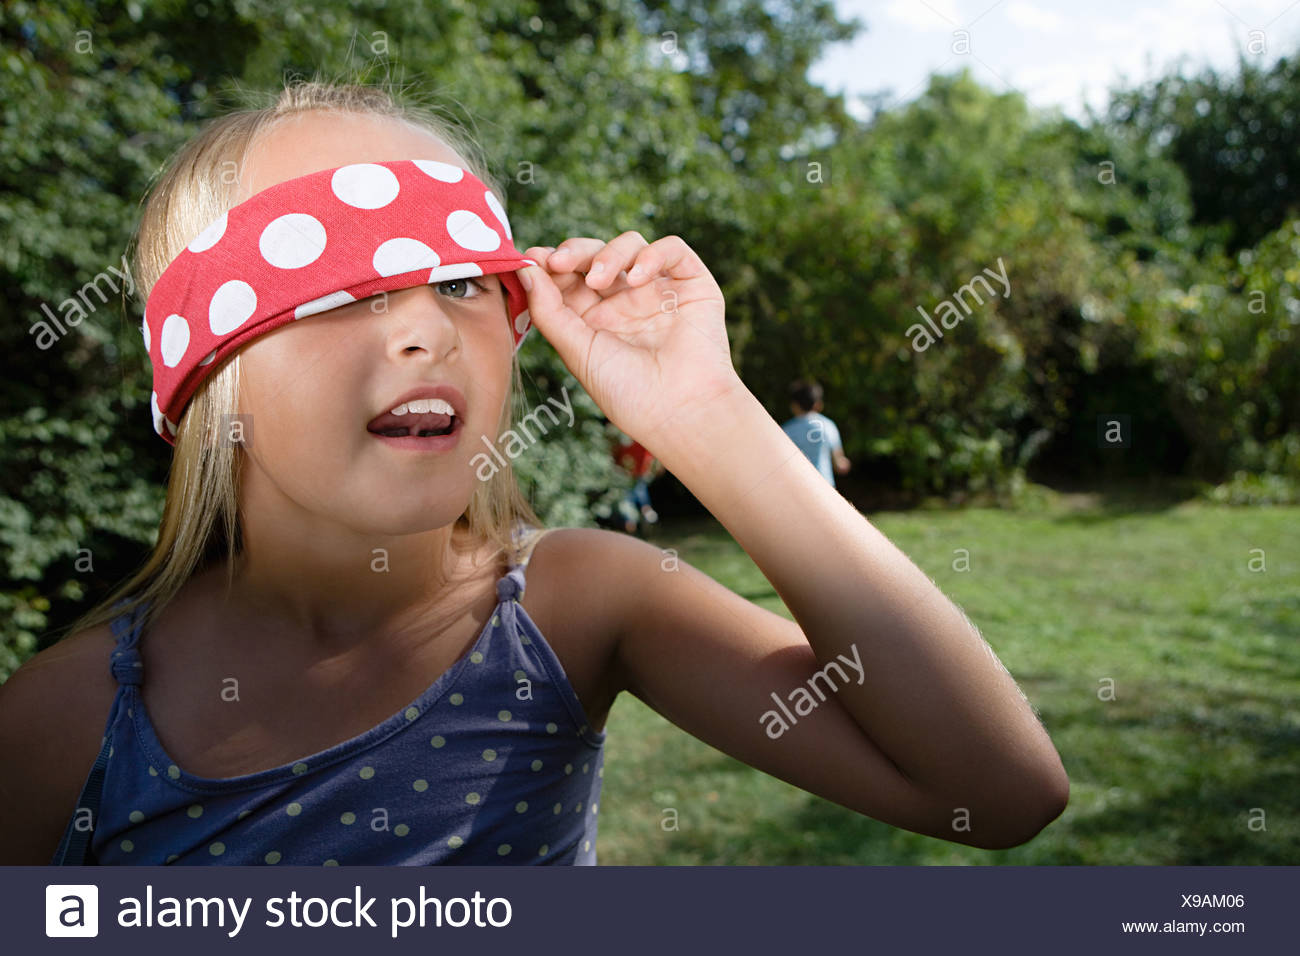 Girl playing hide and seek - Stock Image